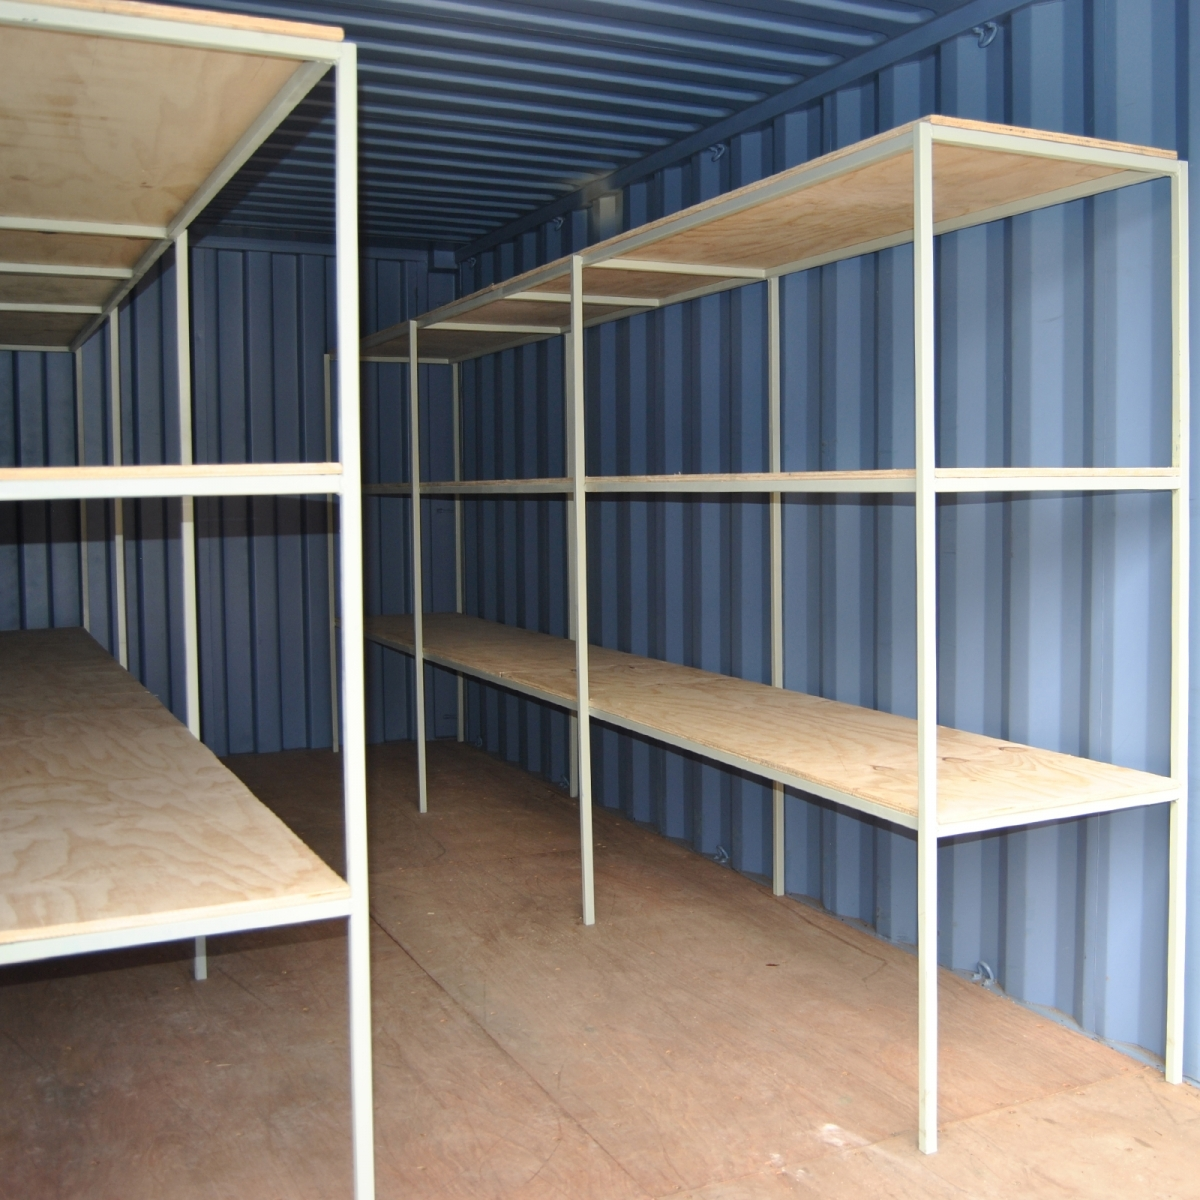 shipping-container-for-storage-in-shipping-container-storage-moodfarm